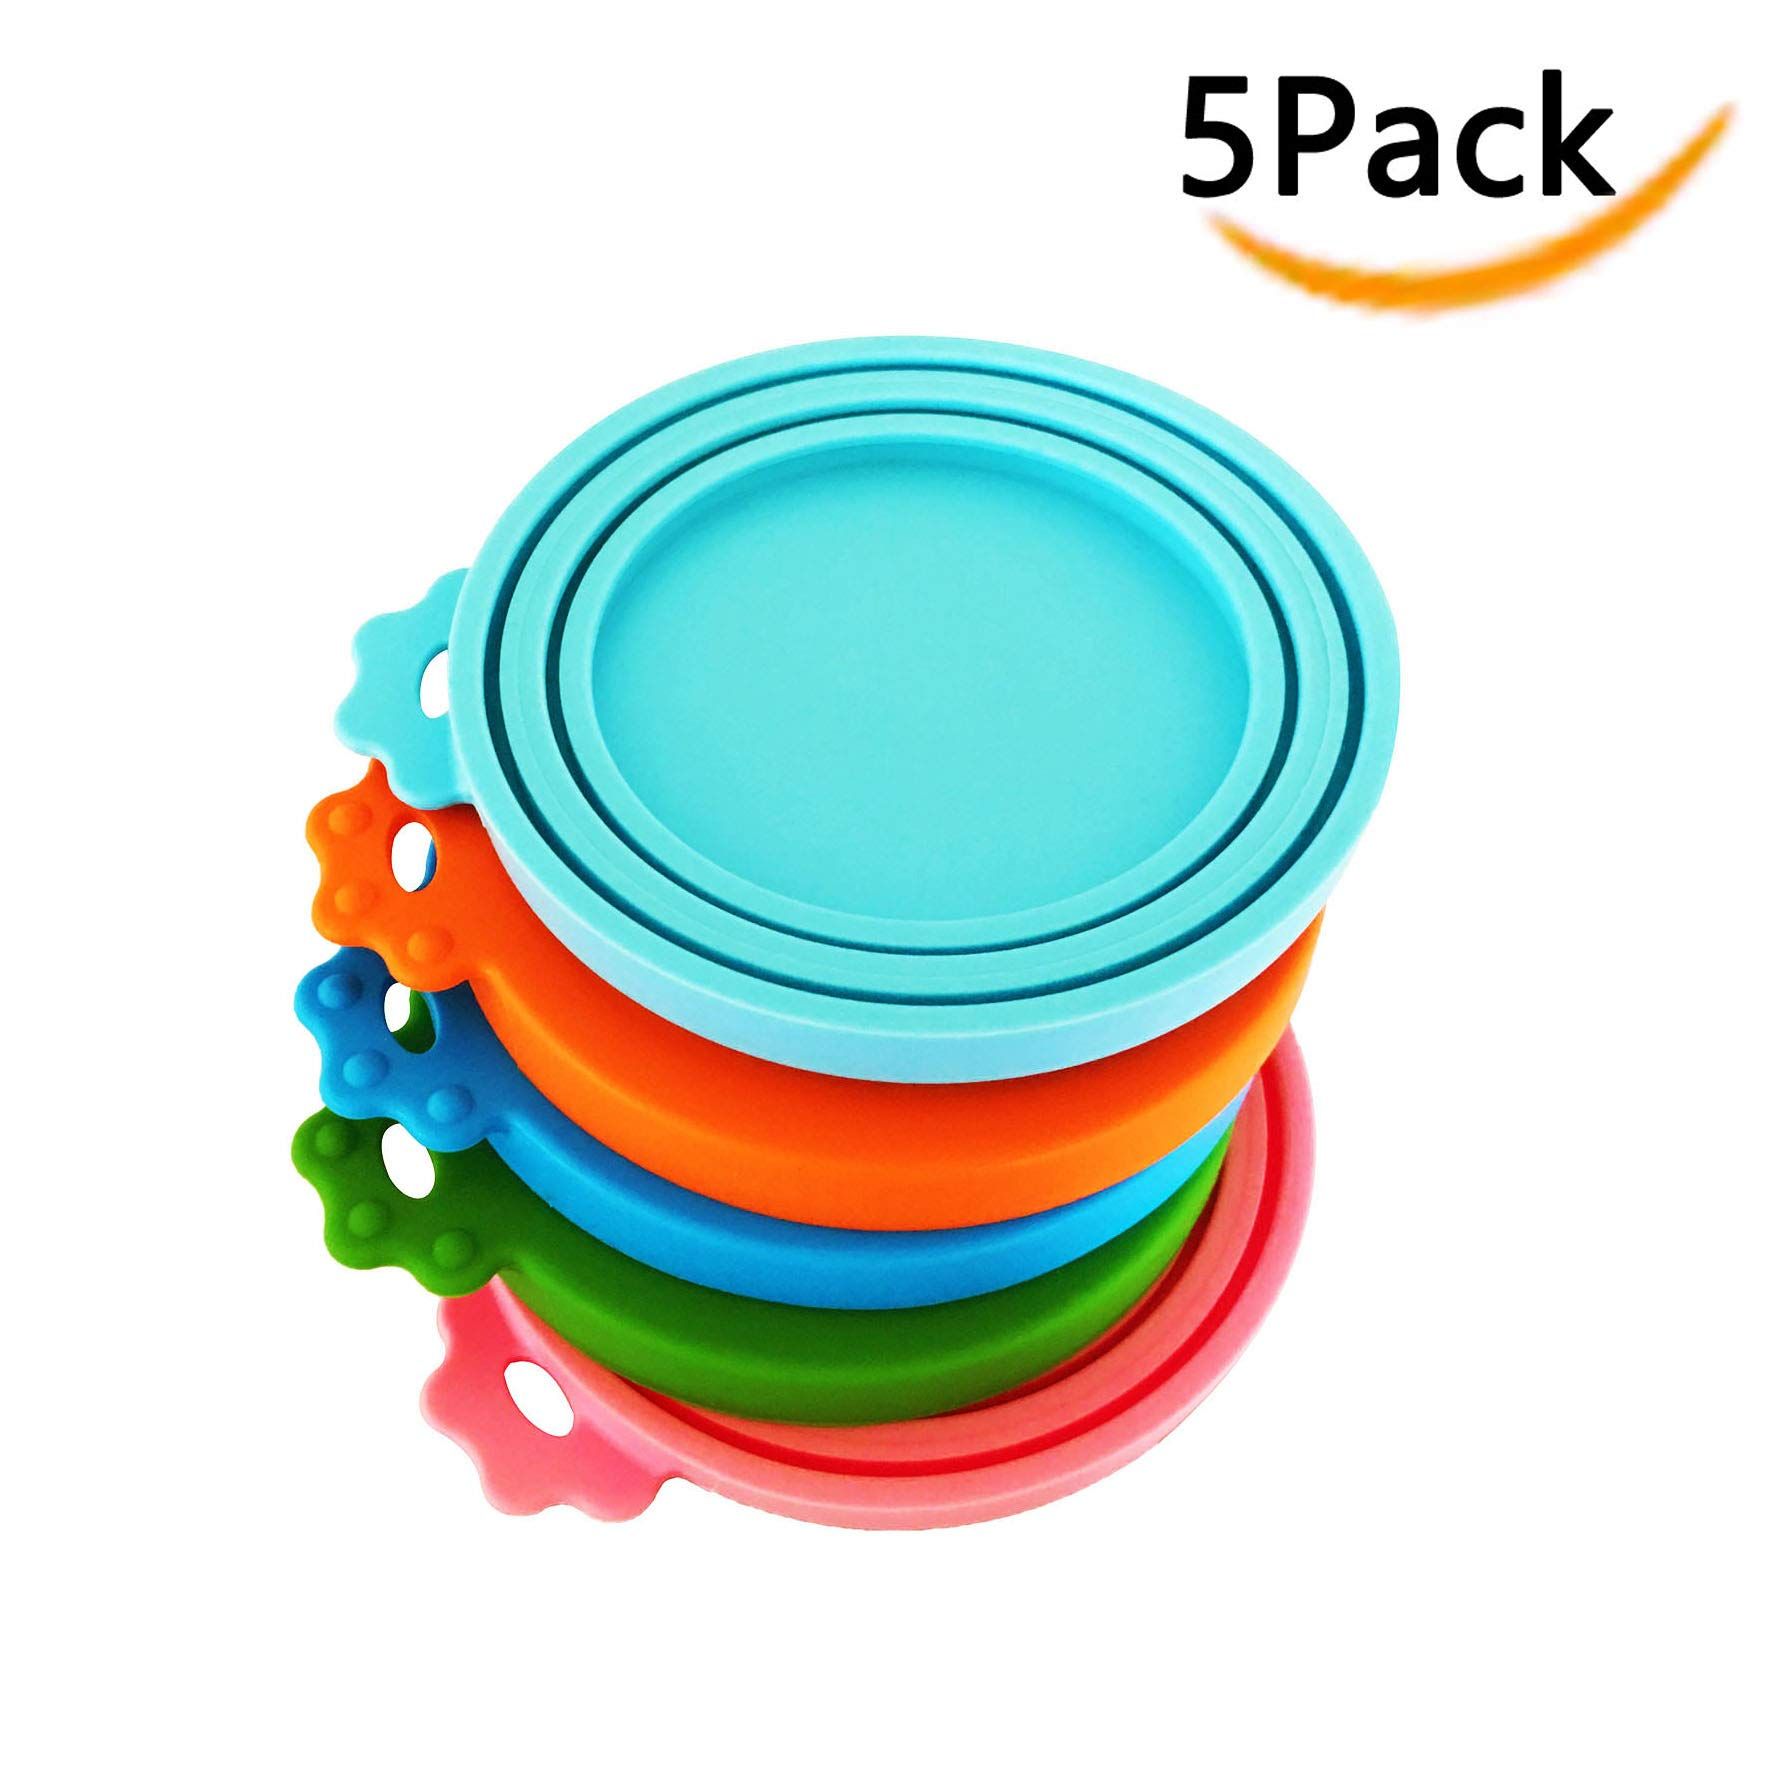 DYBEN Pet Can Covers / 5 Pack/Universal BPA Free & Dishwasher Safe/Silicone Pet Food Can Lid Covers